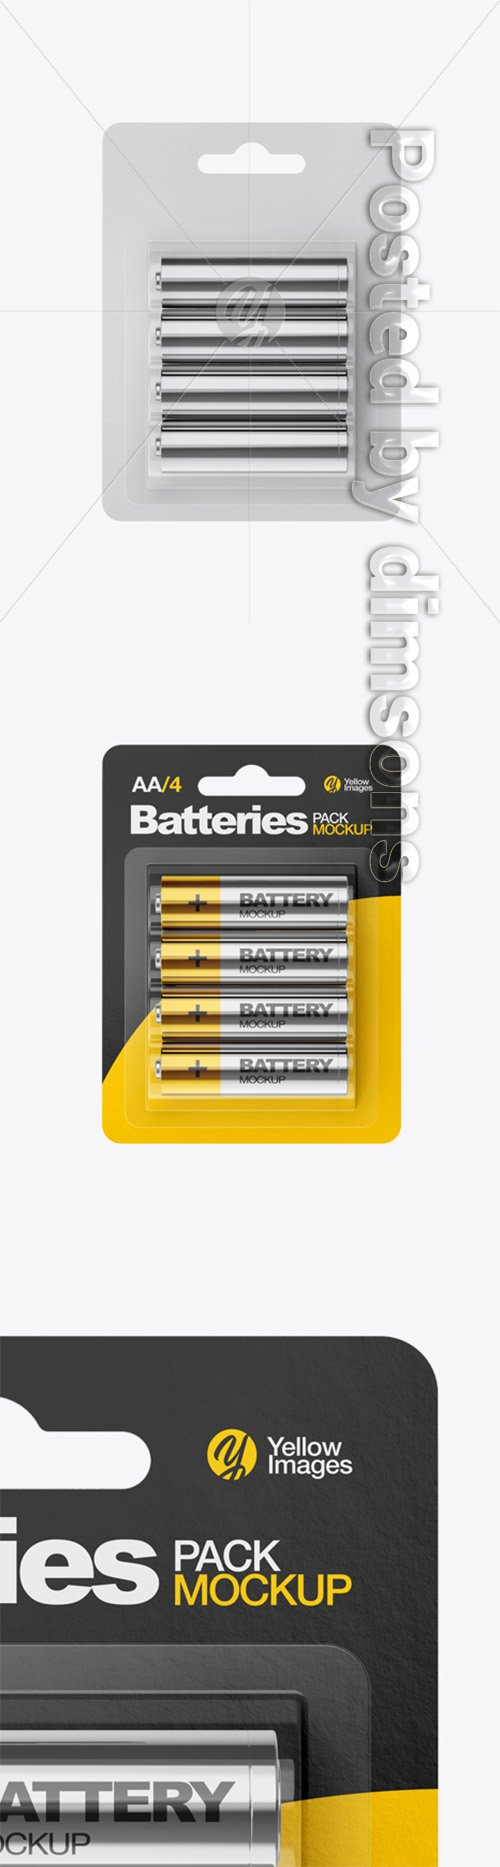 4 Pack Metallic Battery AA Mockup 33120 TIF